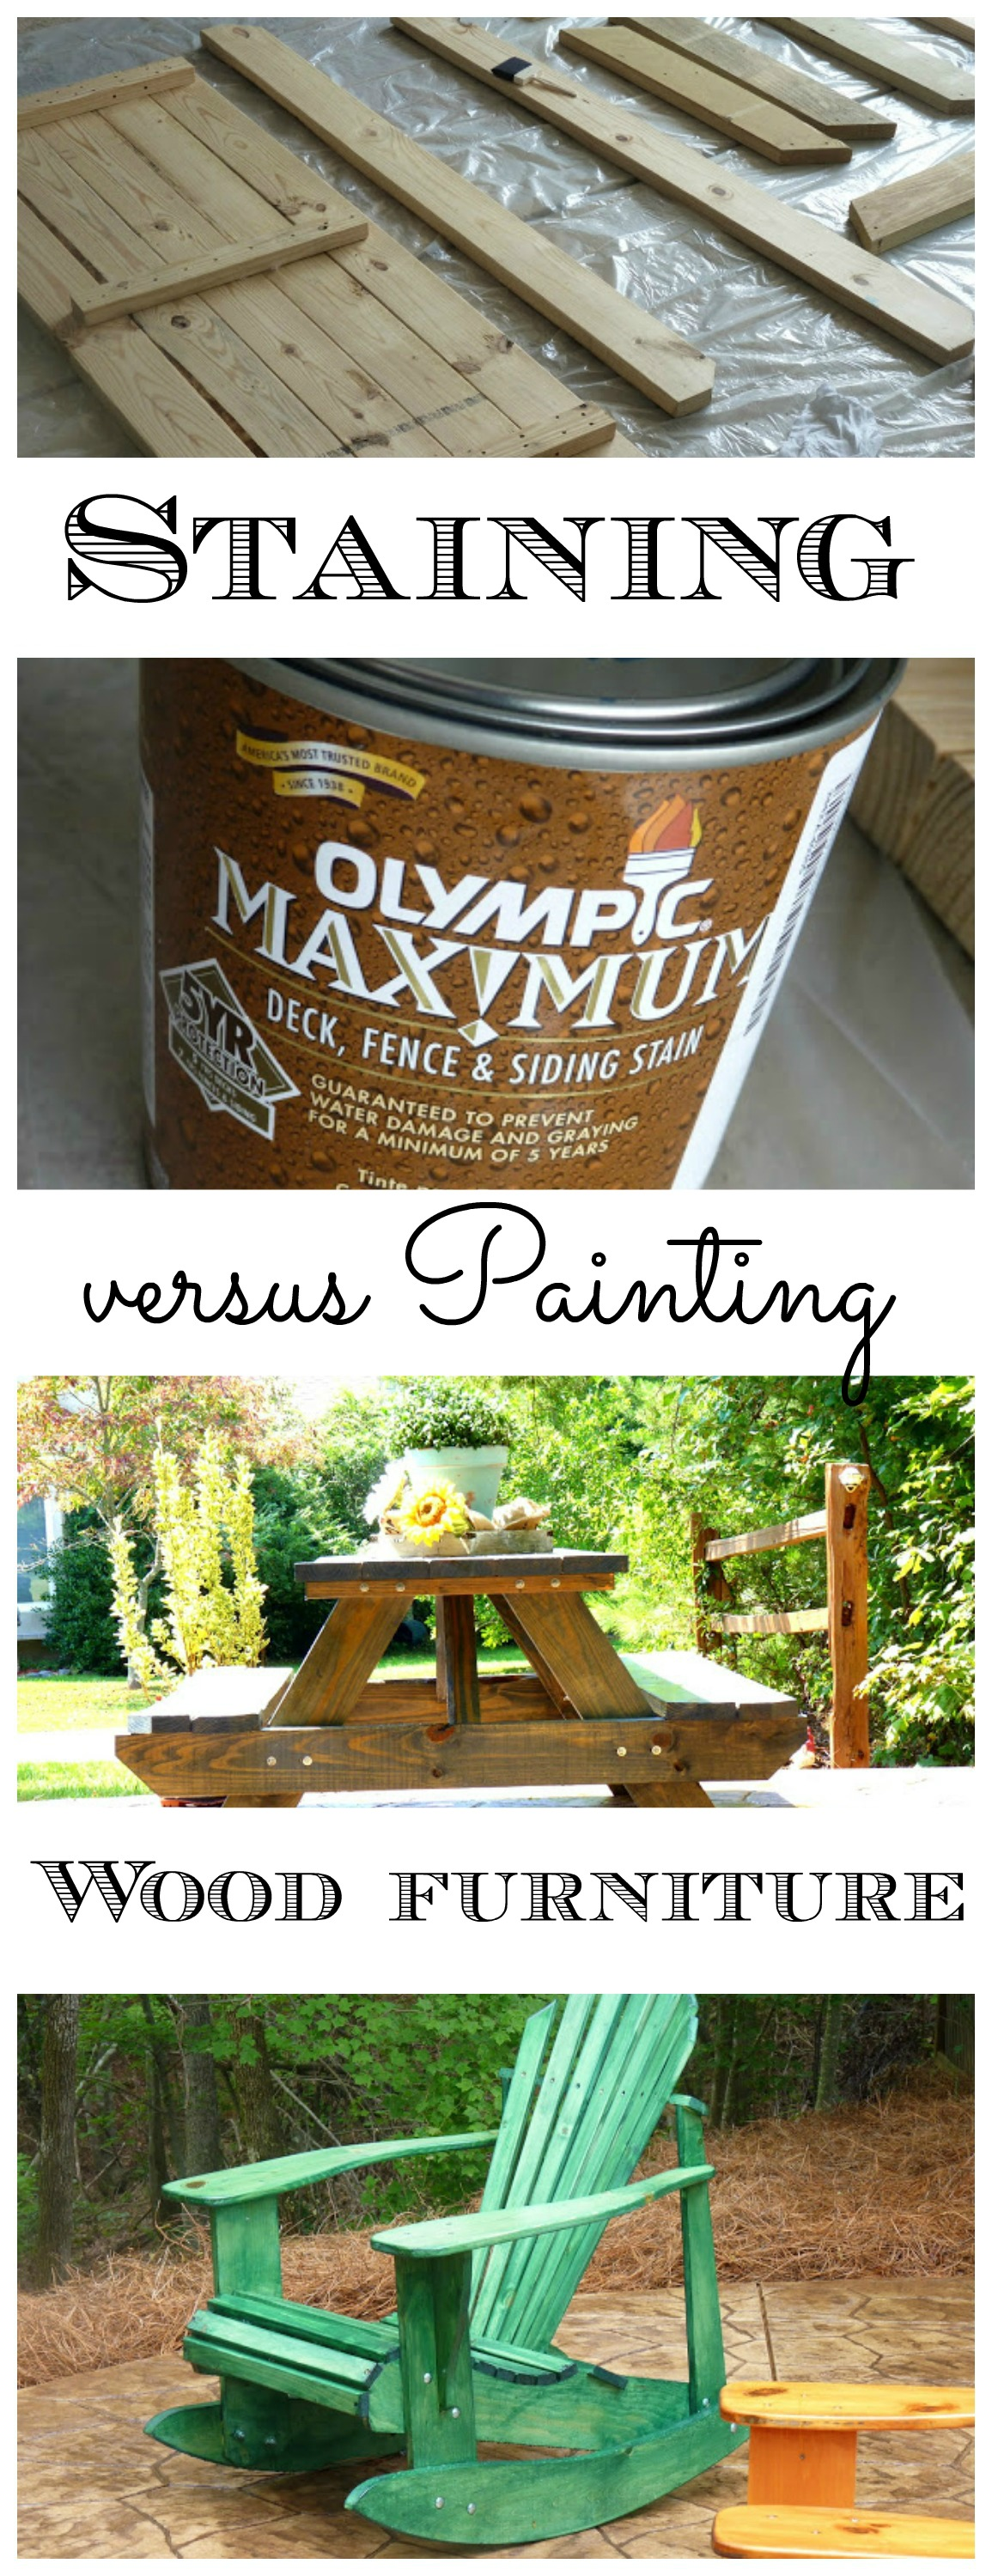 Staining wood Furniture, versus painting - Debbiedoo's